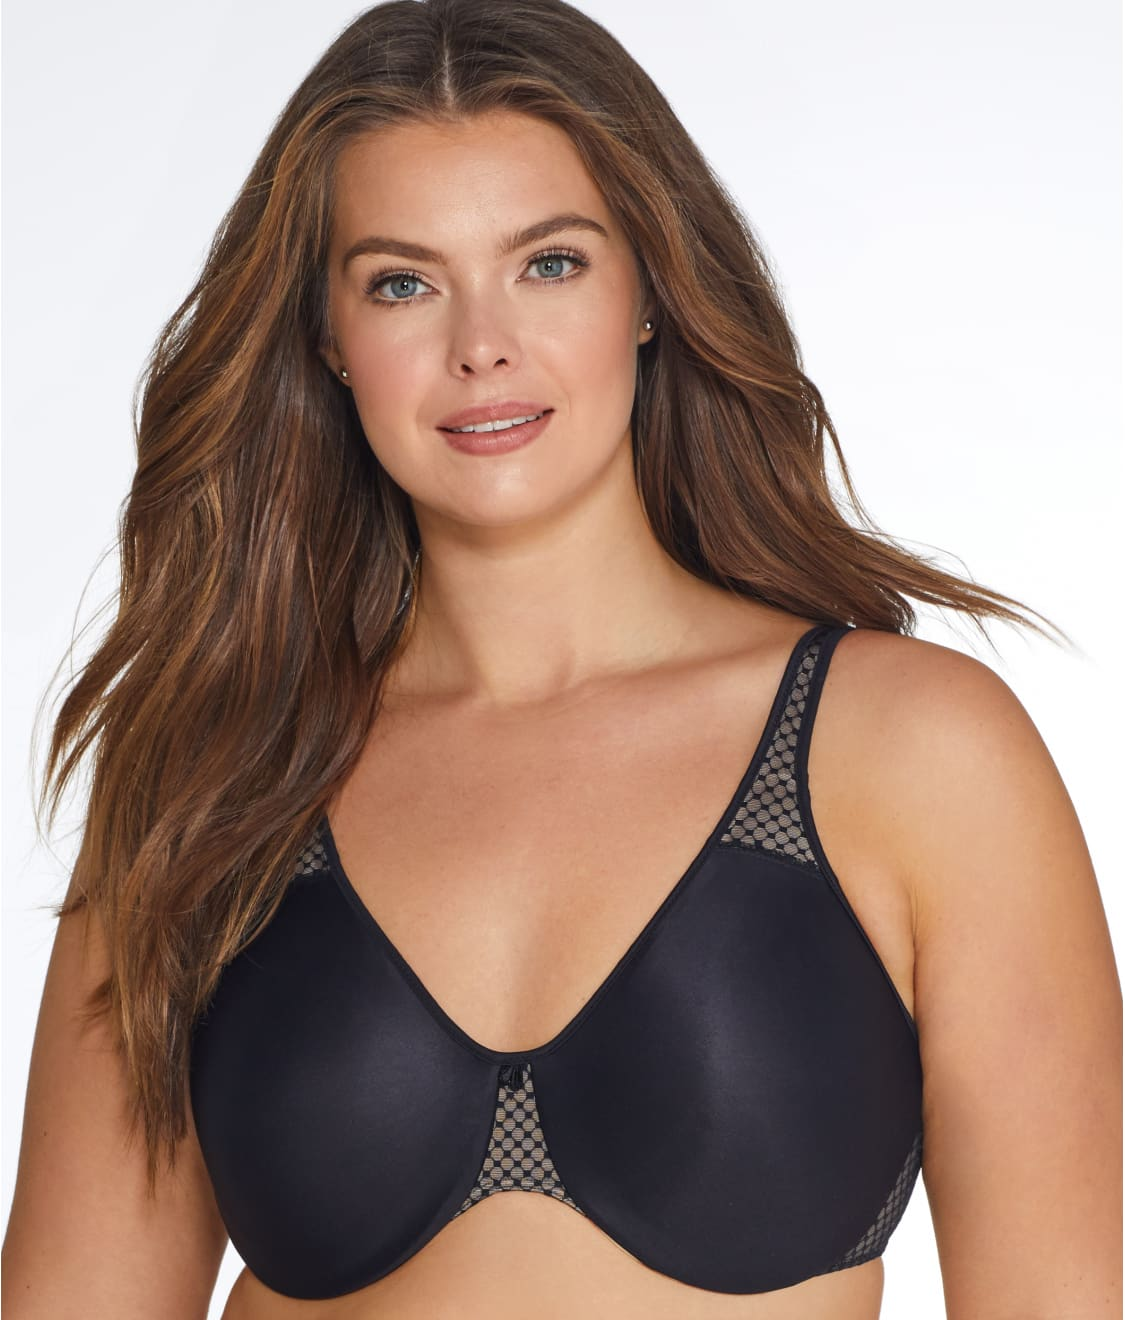 b0ca0a351aa76 See Passion for Comfort Minimizer Bra in Black   Nude